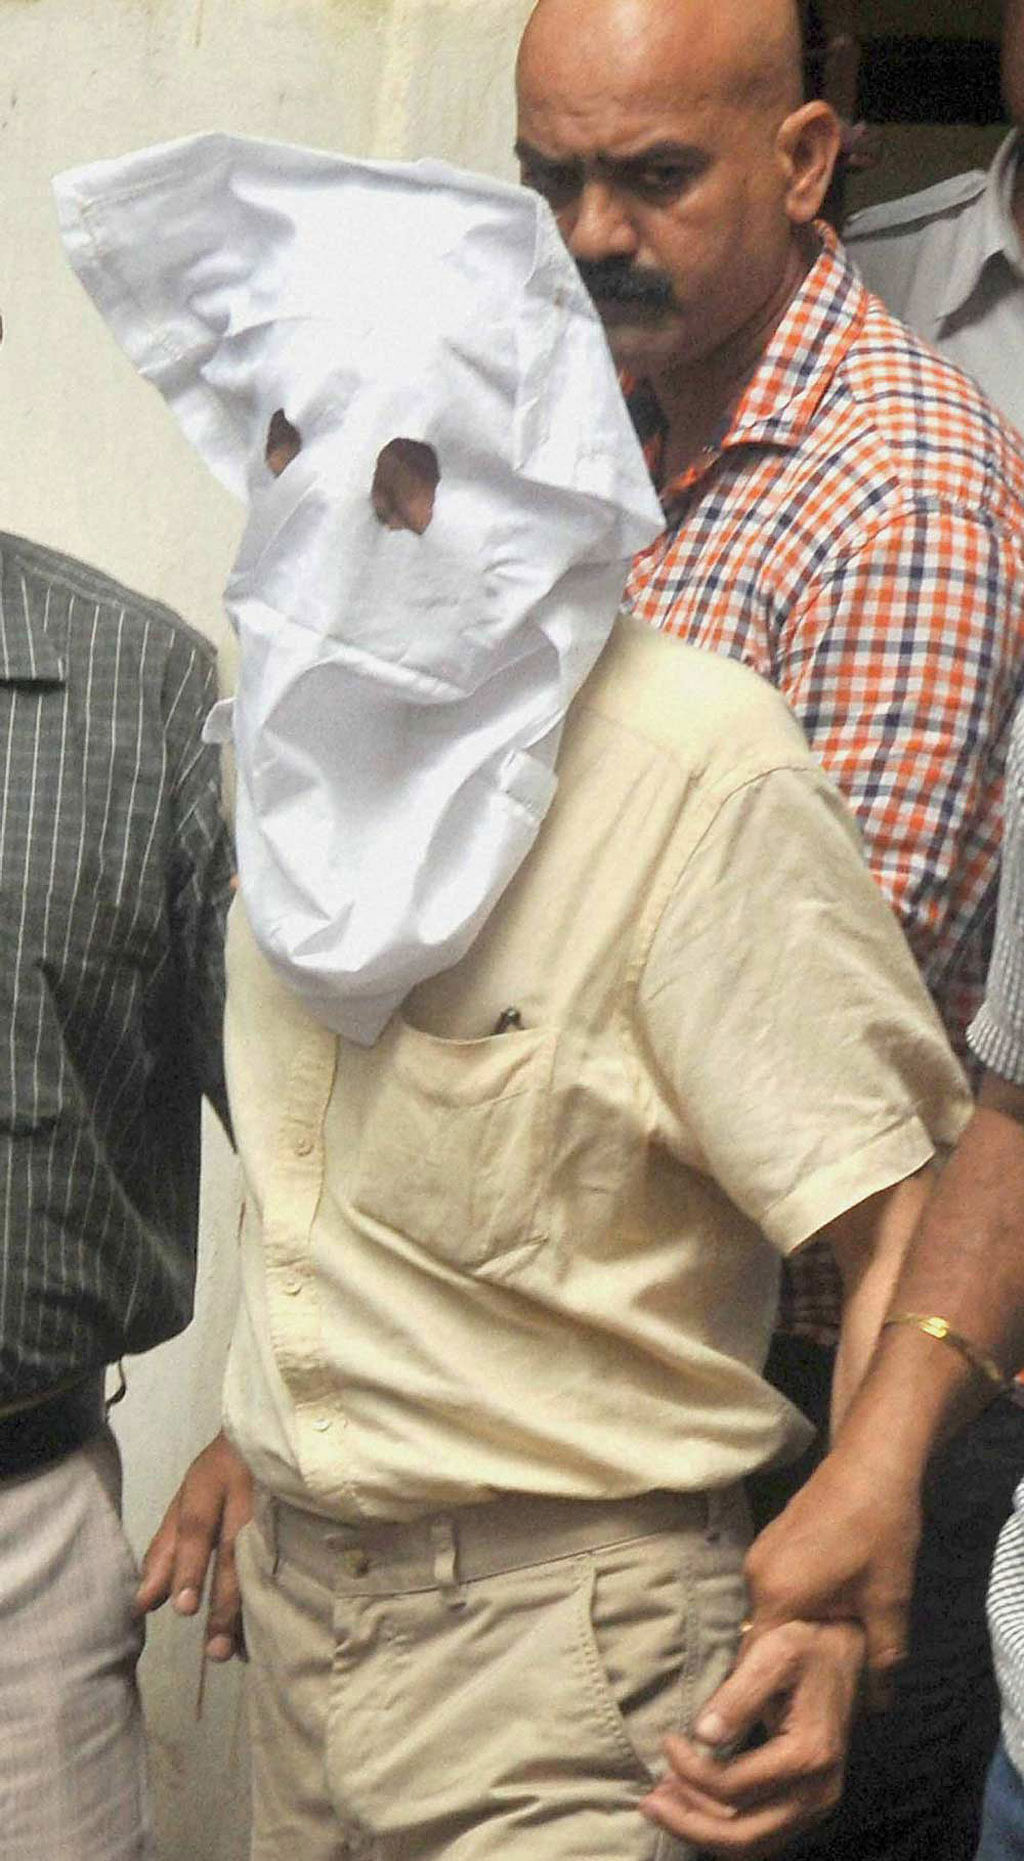 Indrani Mukerjea's second husband, Sanjeev Khanna being taken away by the police. (Photo: PTI)